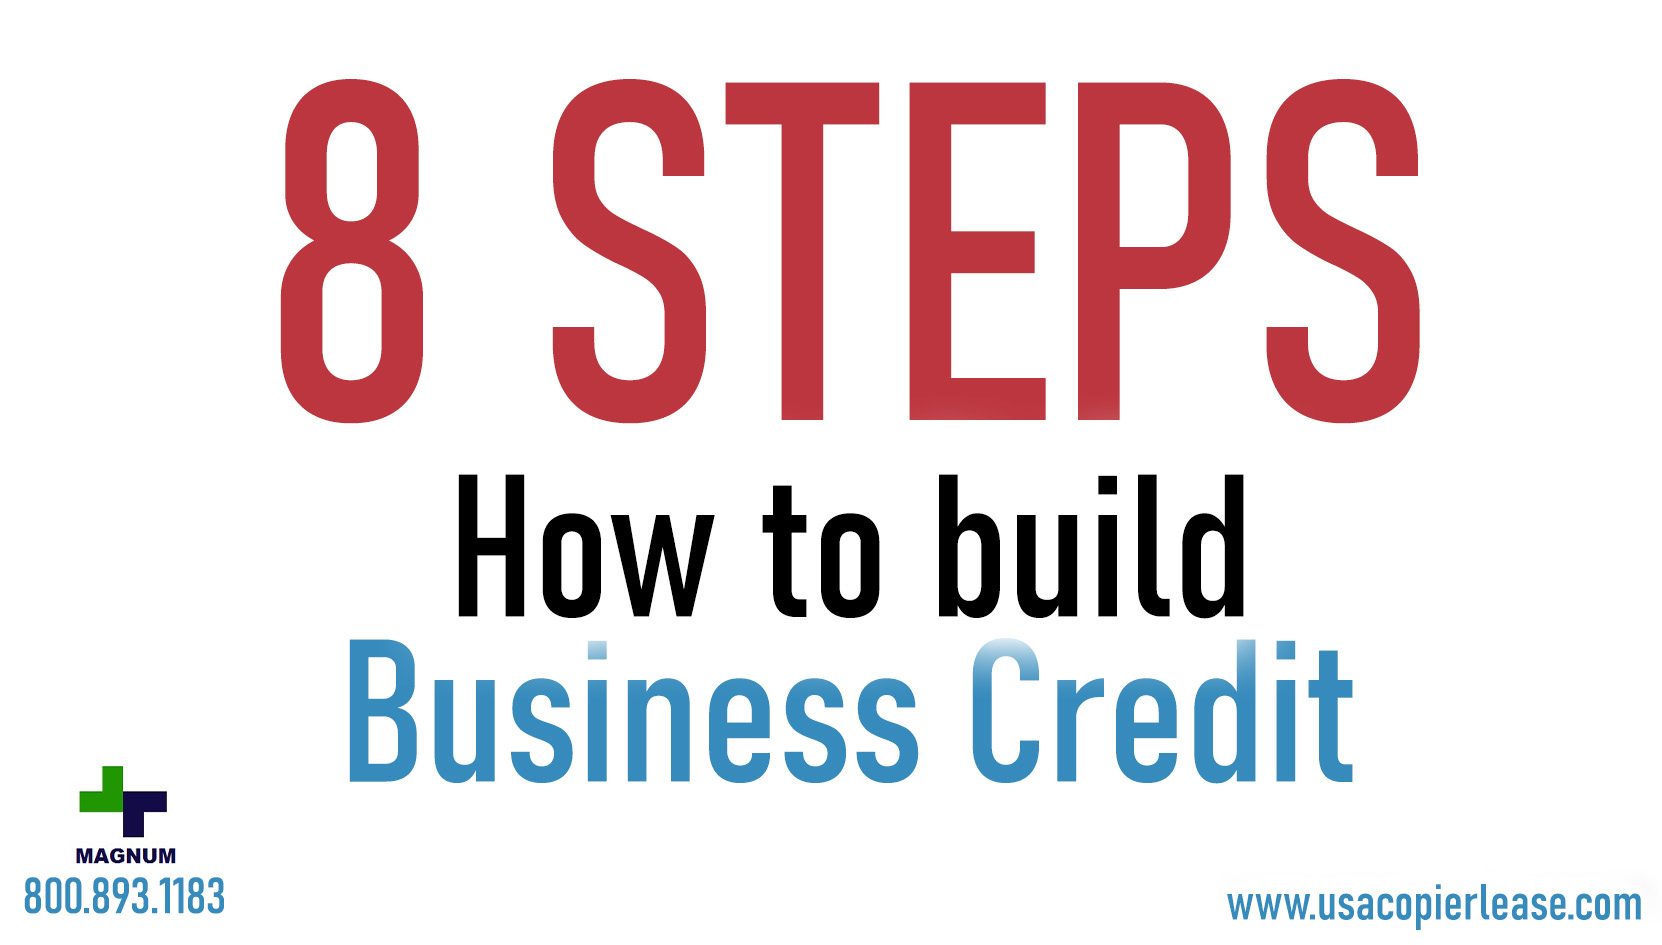 How do Businesses Build Credit?